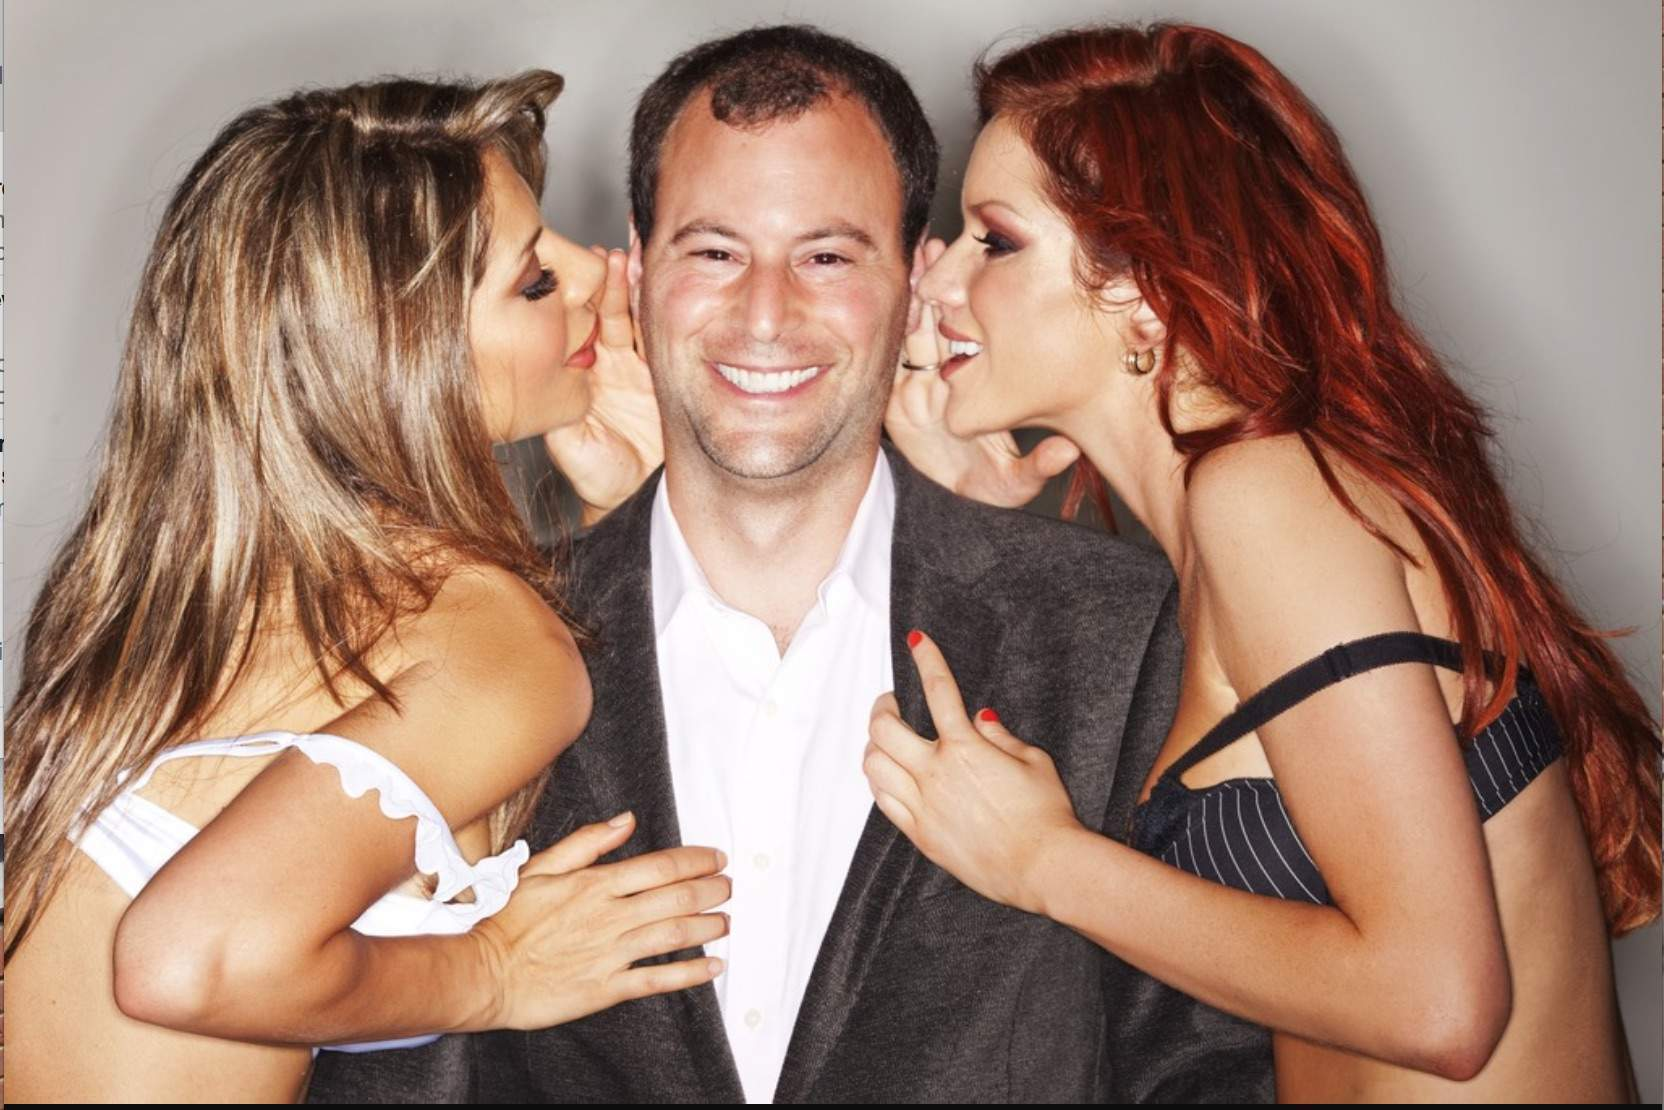 Hackers have released the names and contacts of adultery dating site Ashley Madison users online